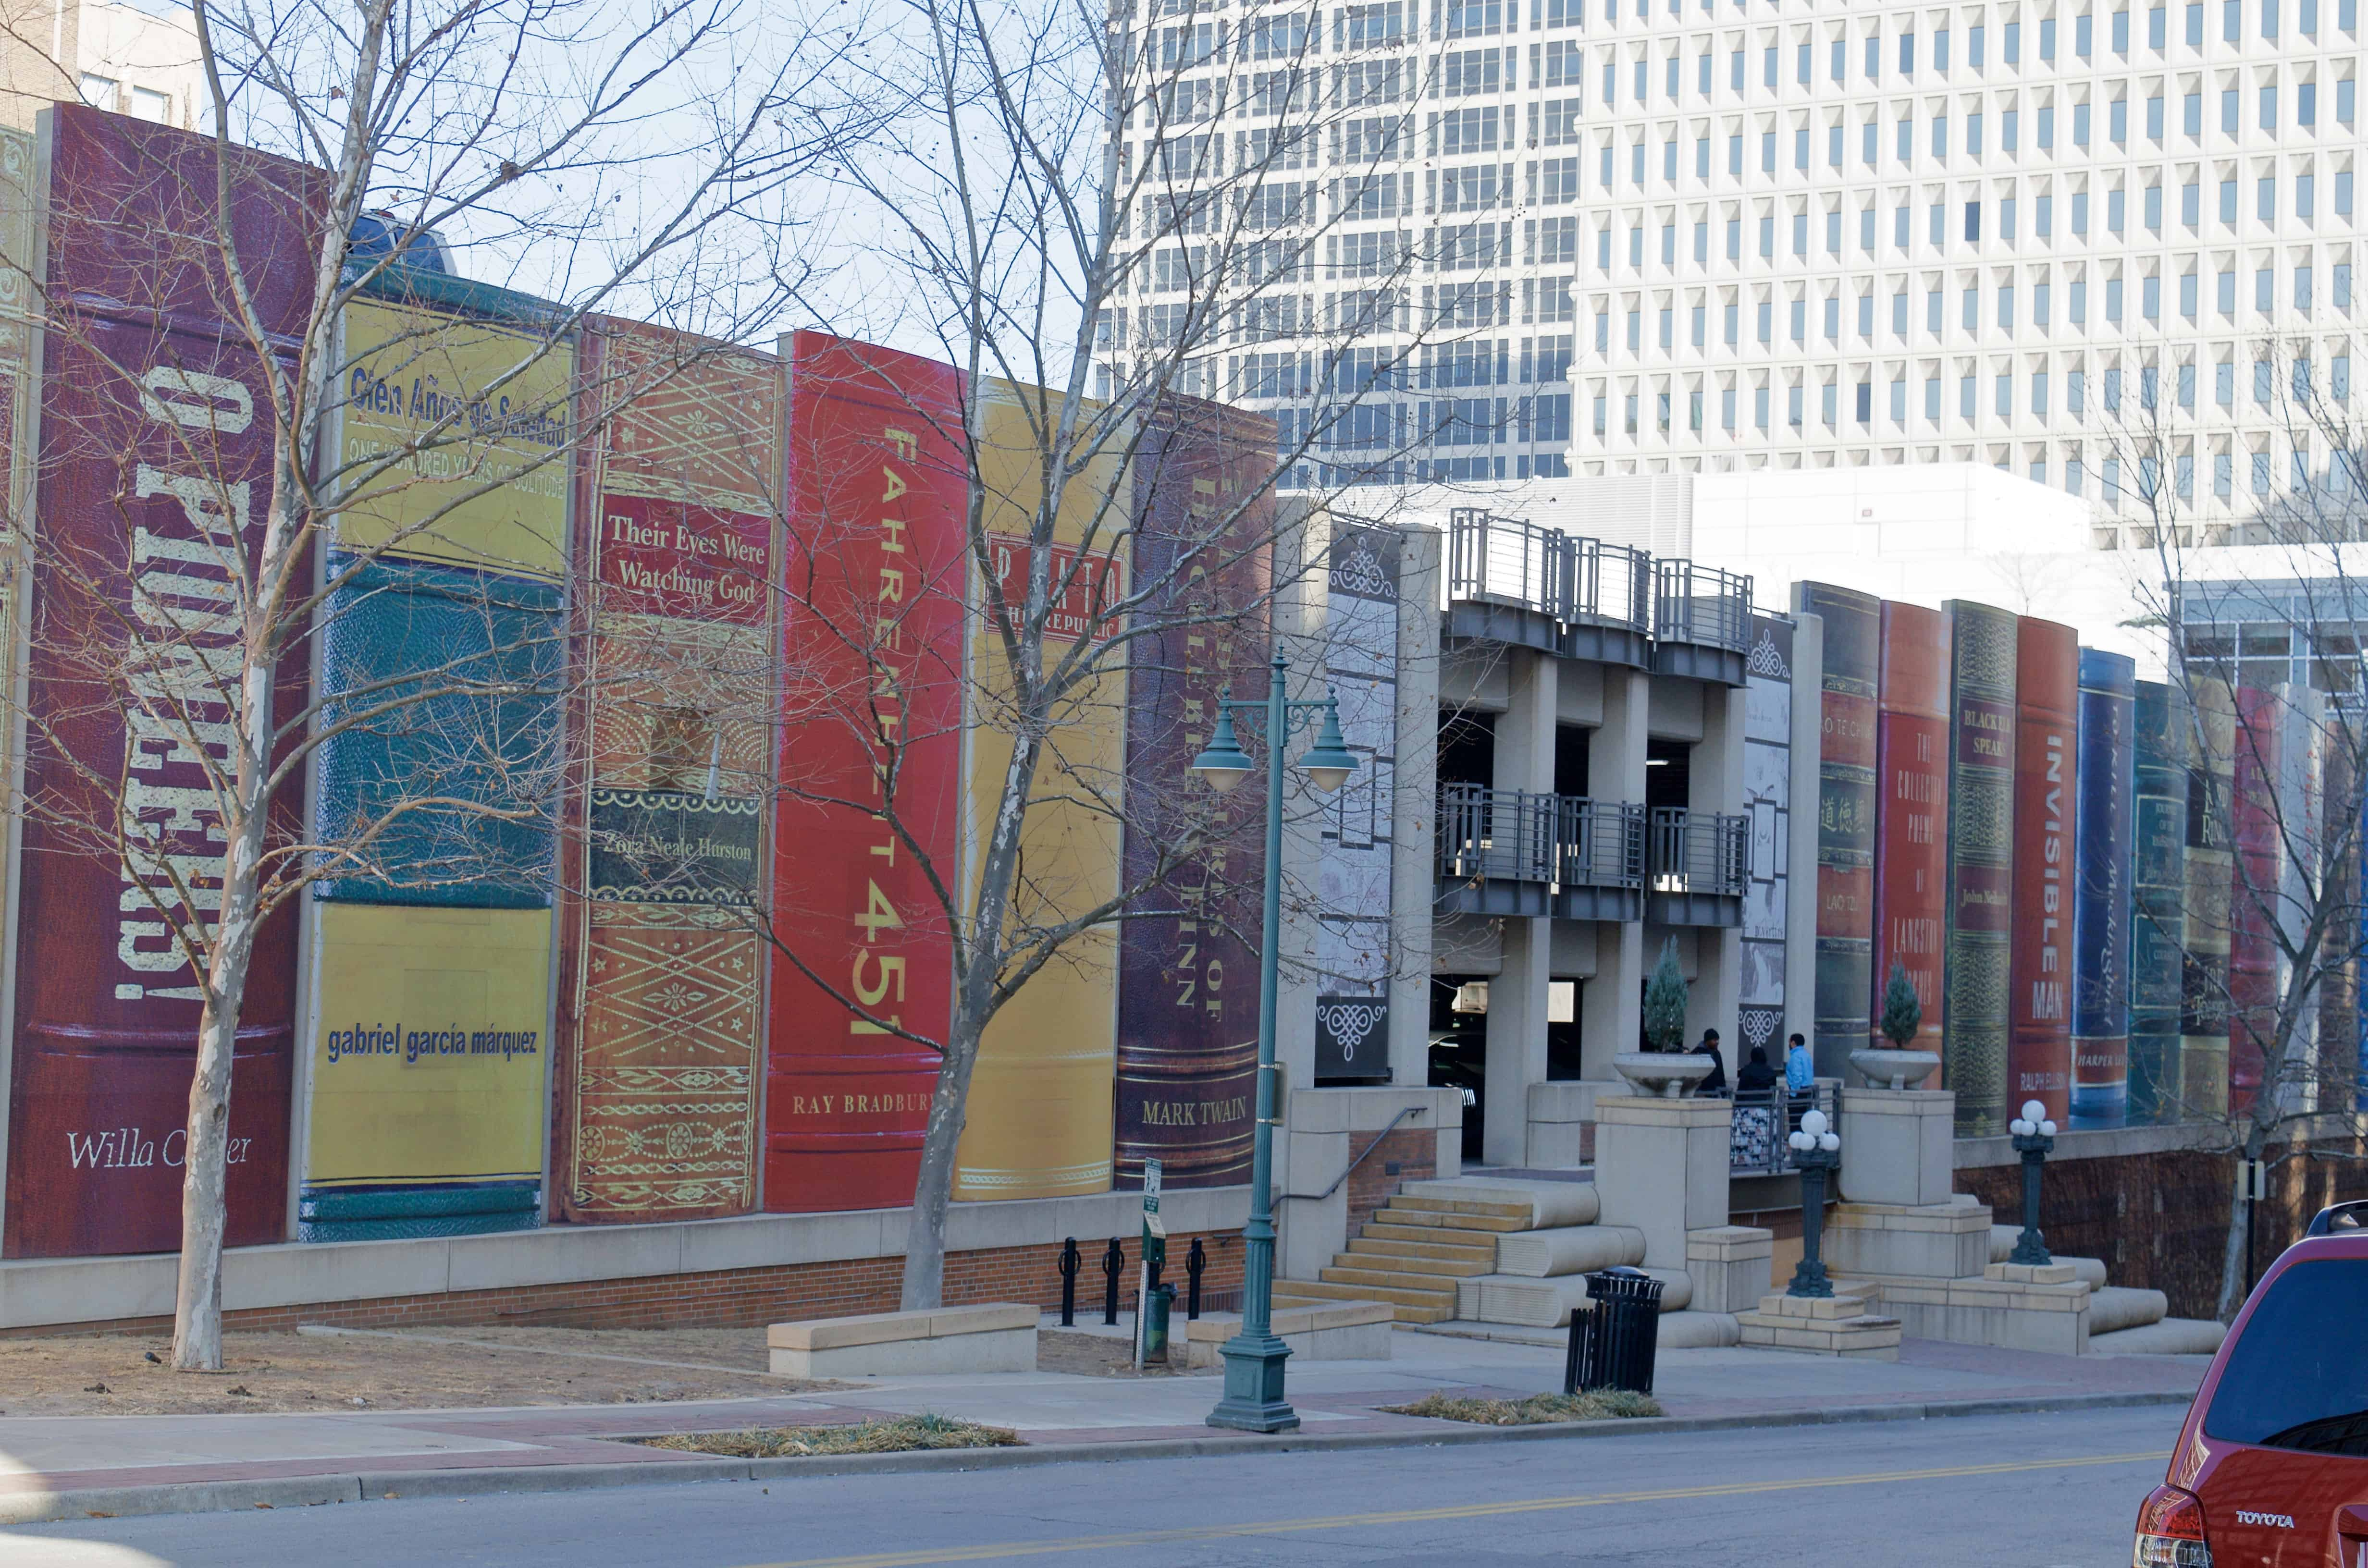 Public Library Chasing History in the Kansas City Area in Missouri